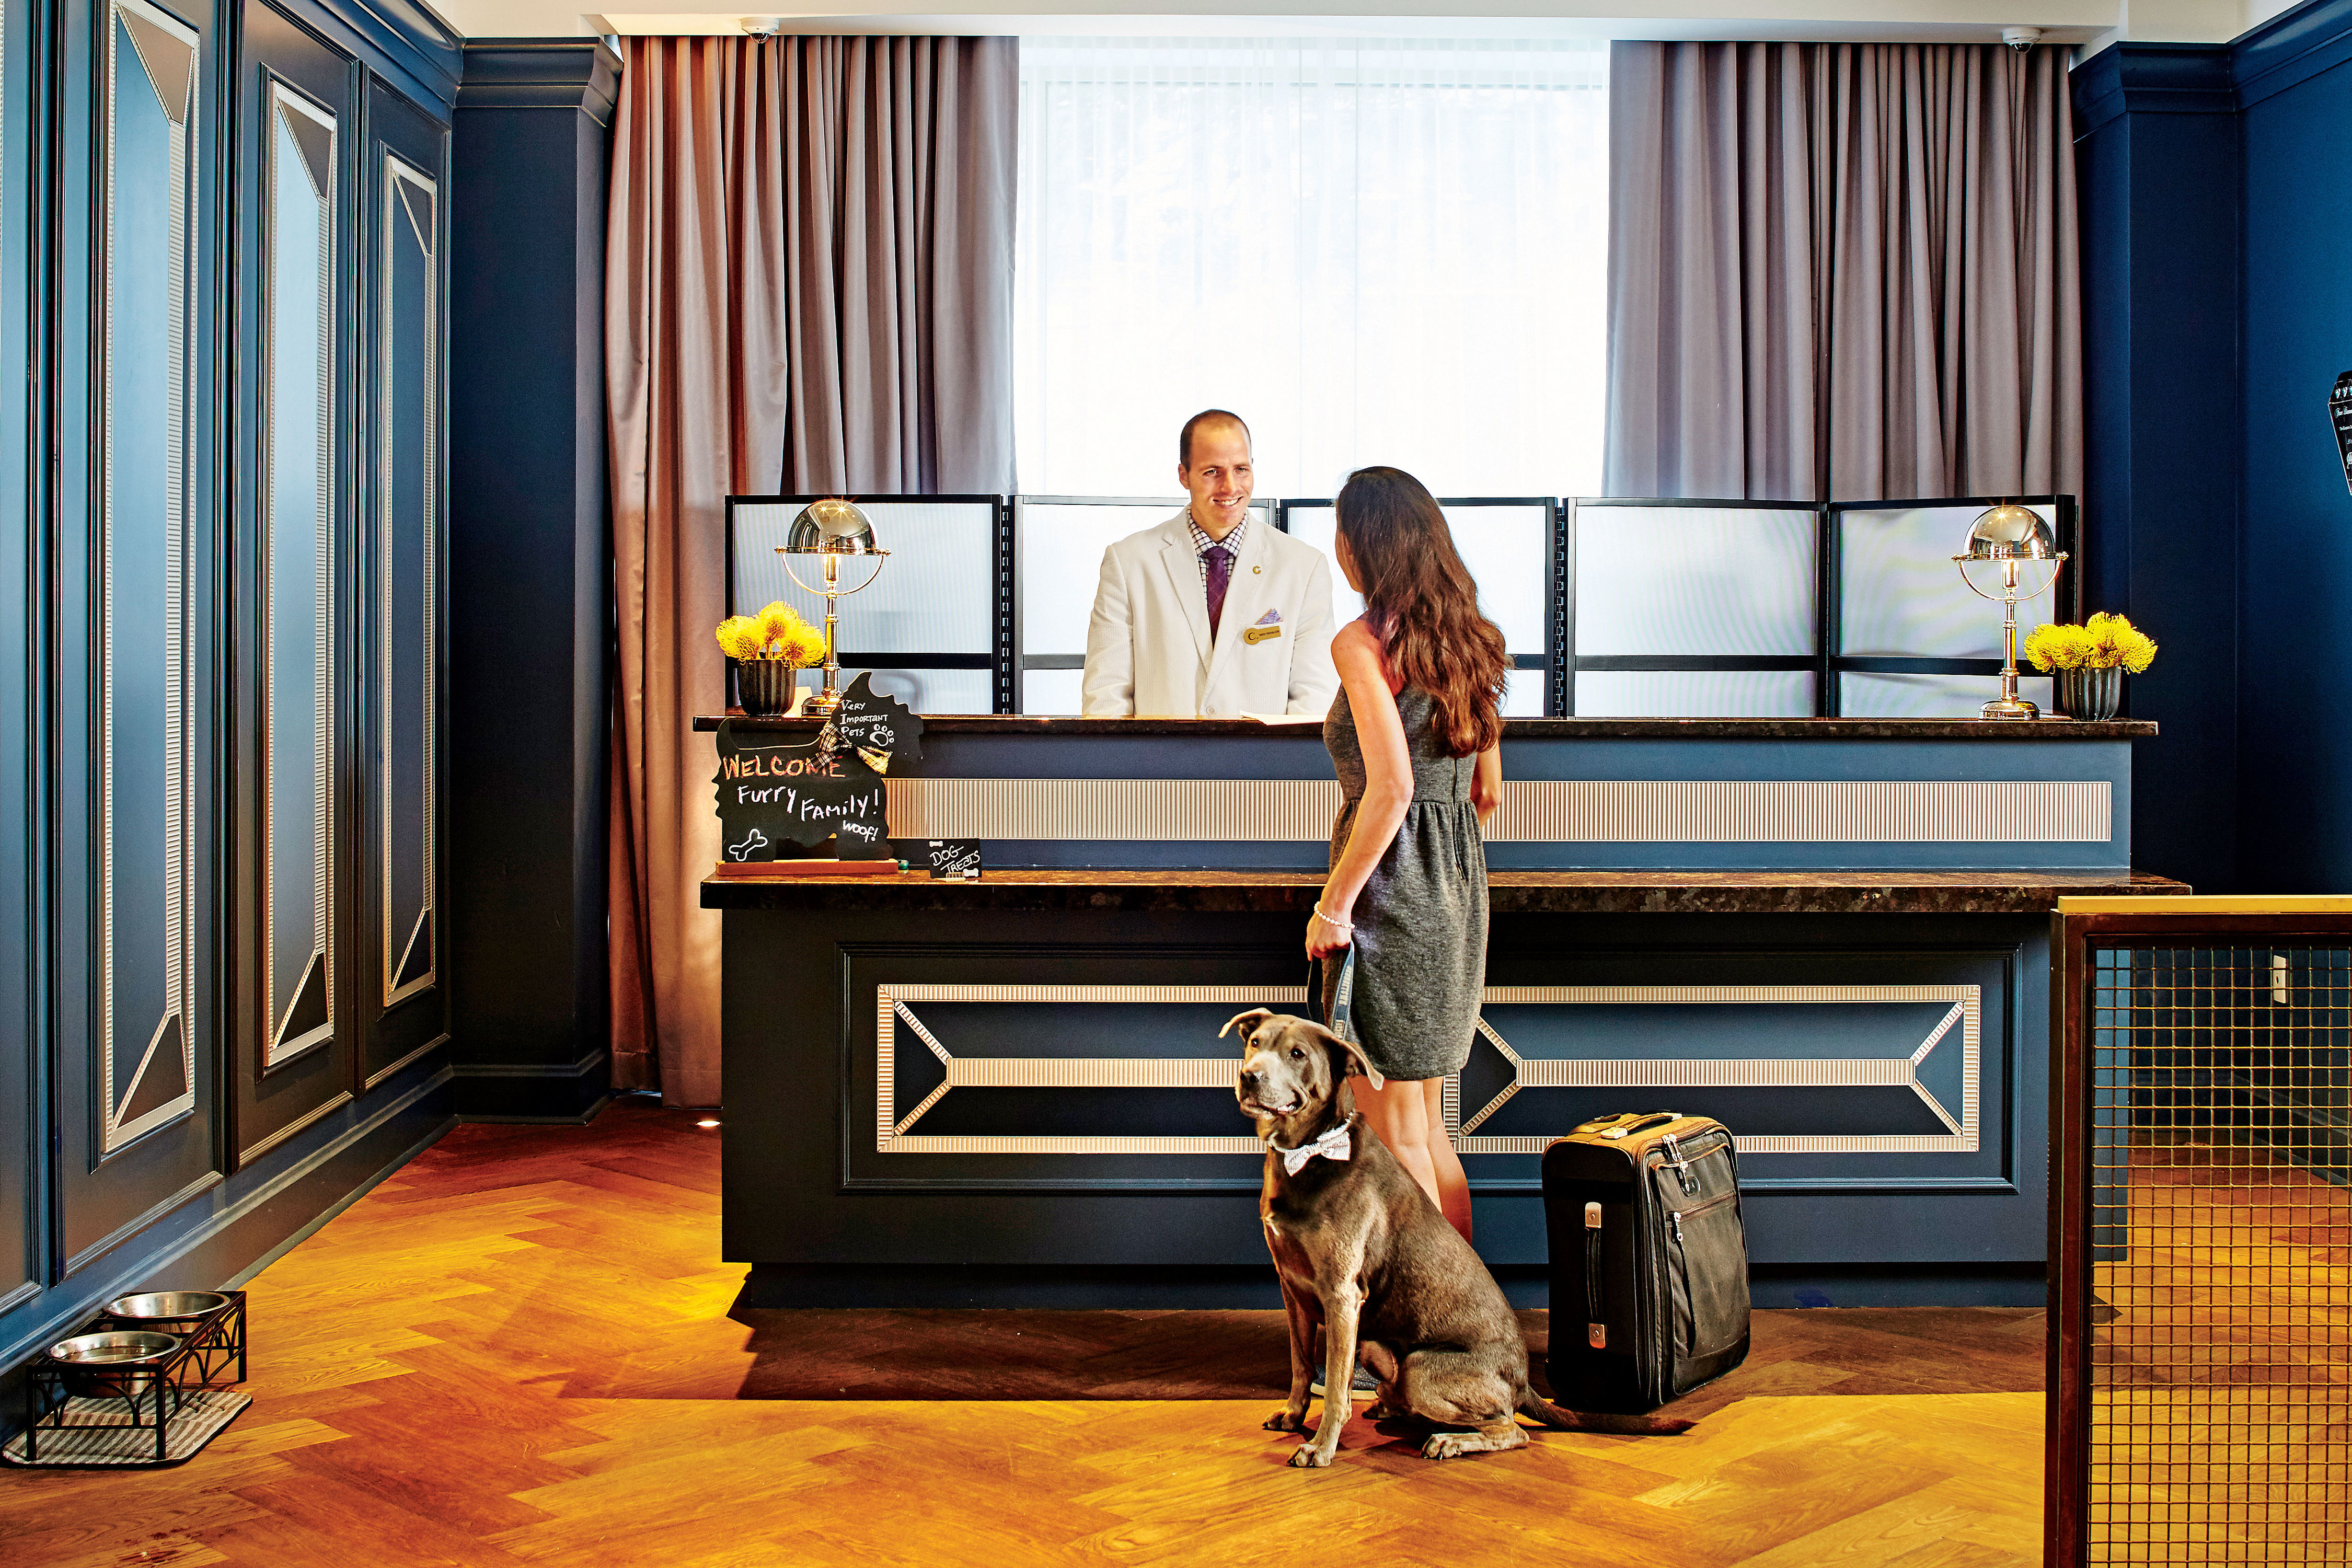 10 Things You Don't Find in Hotels Anymore